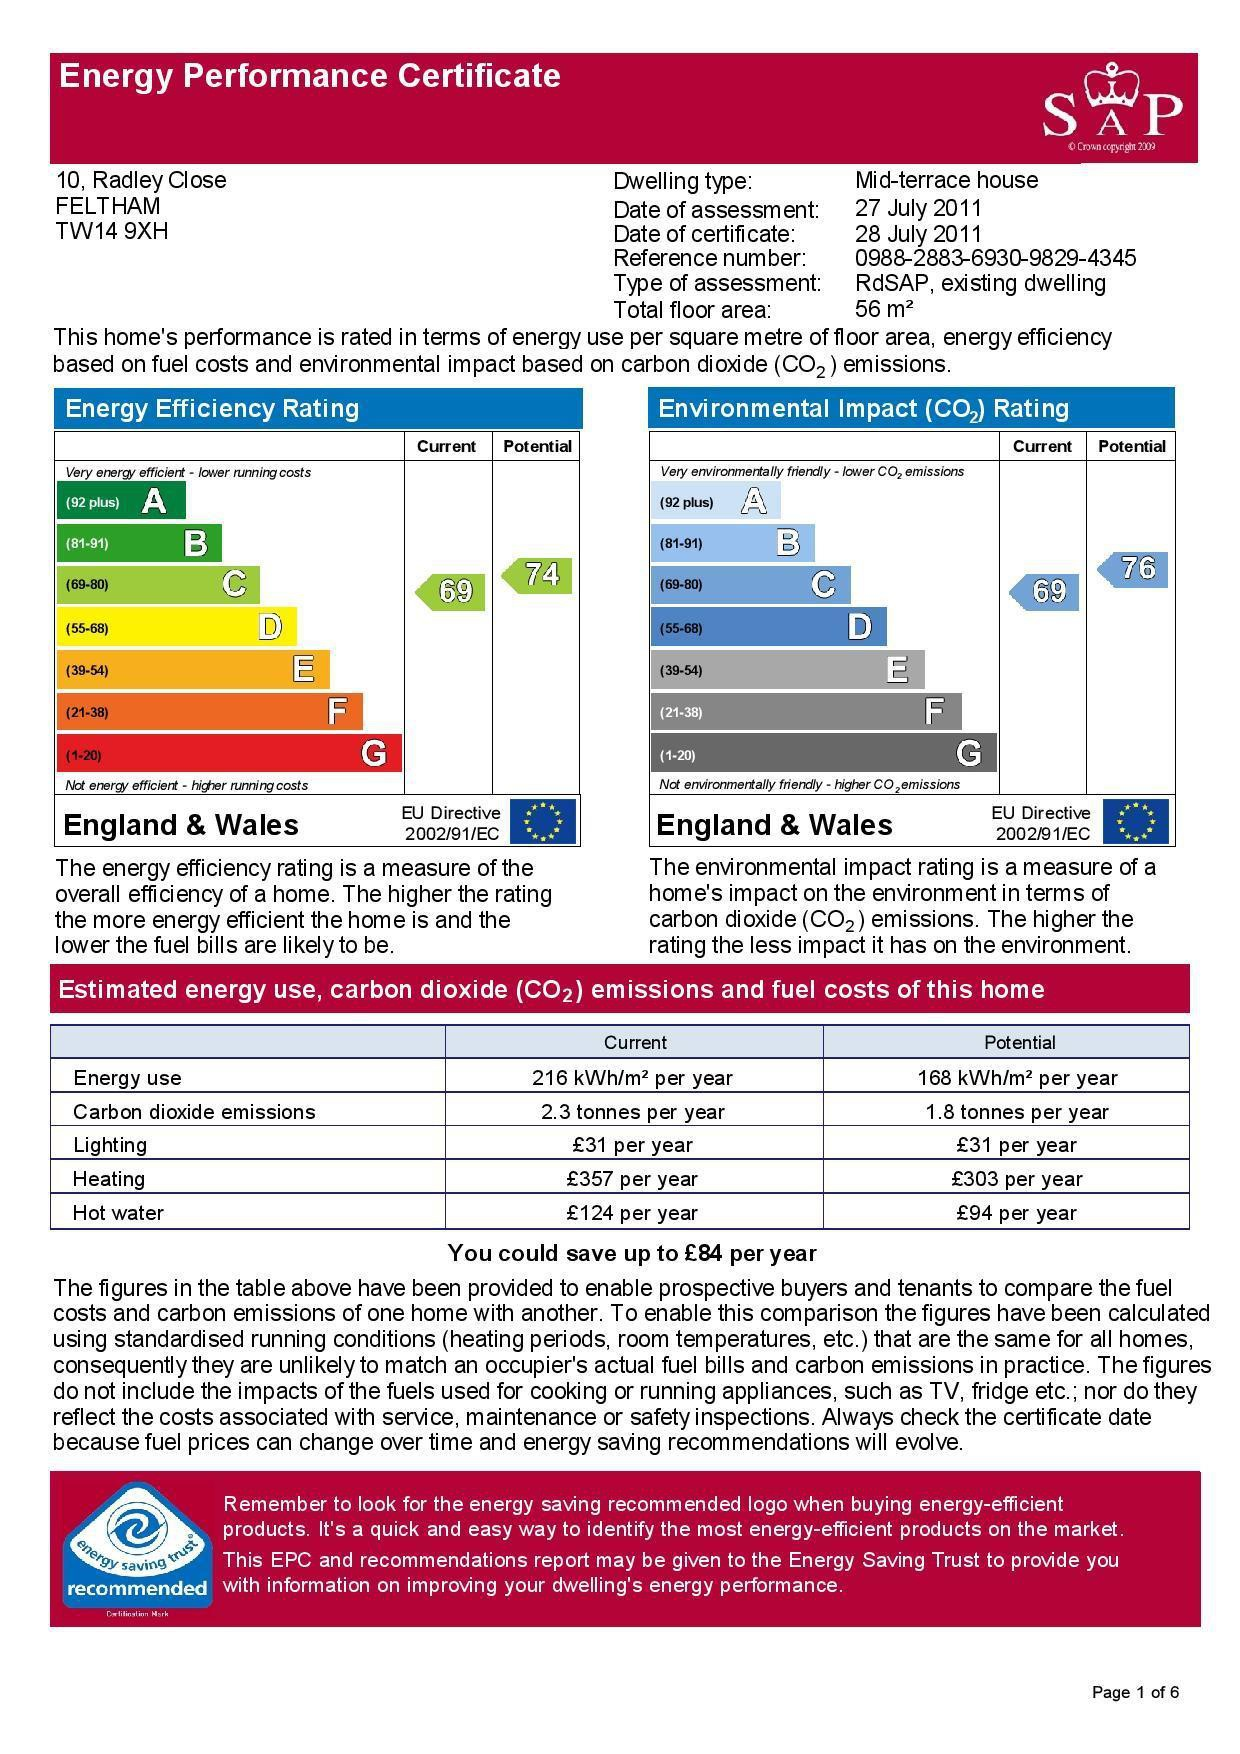 EPC Graph for 10 Radley Close, Feltham, Middlesex TW14 9XH